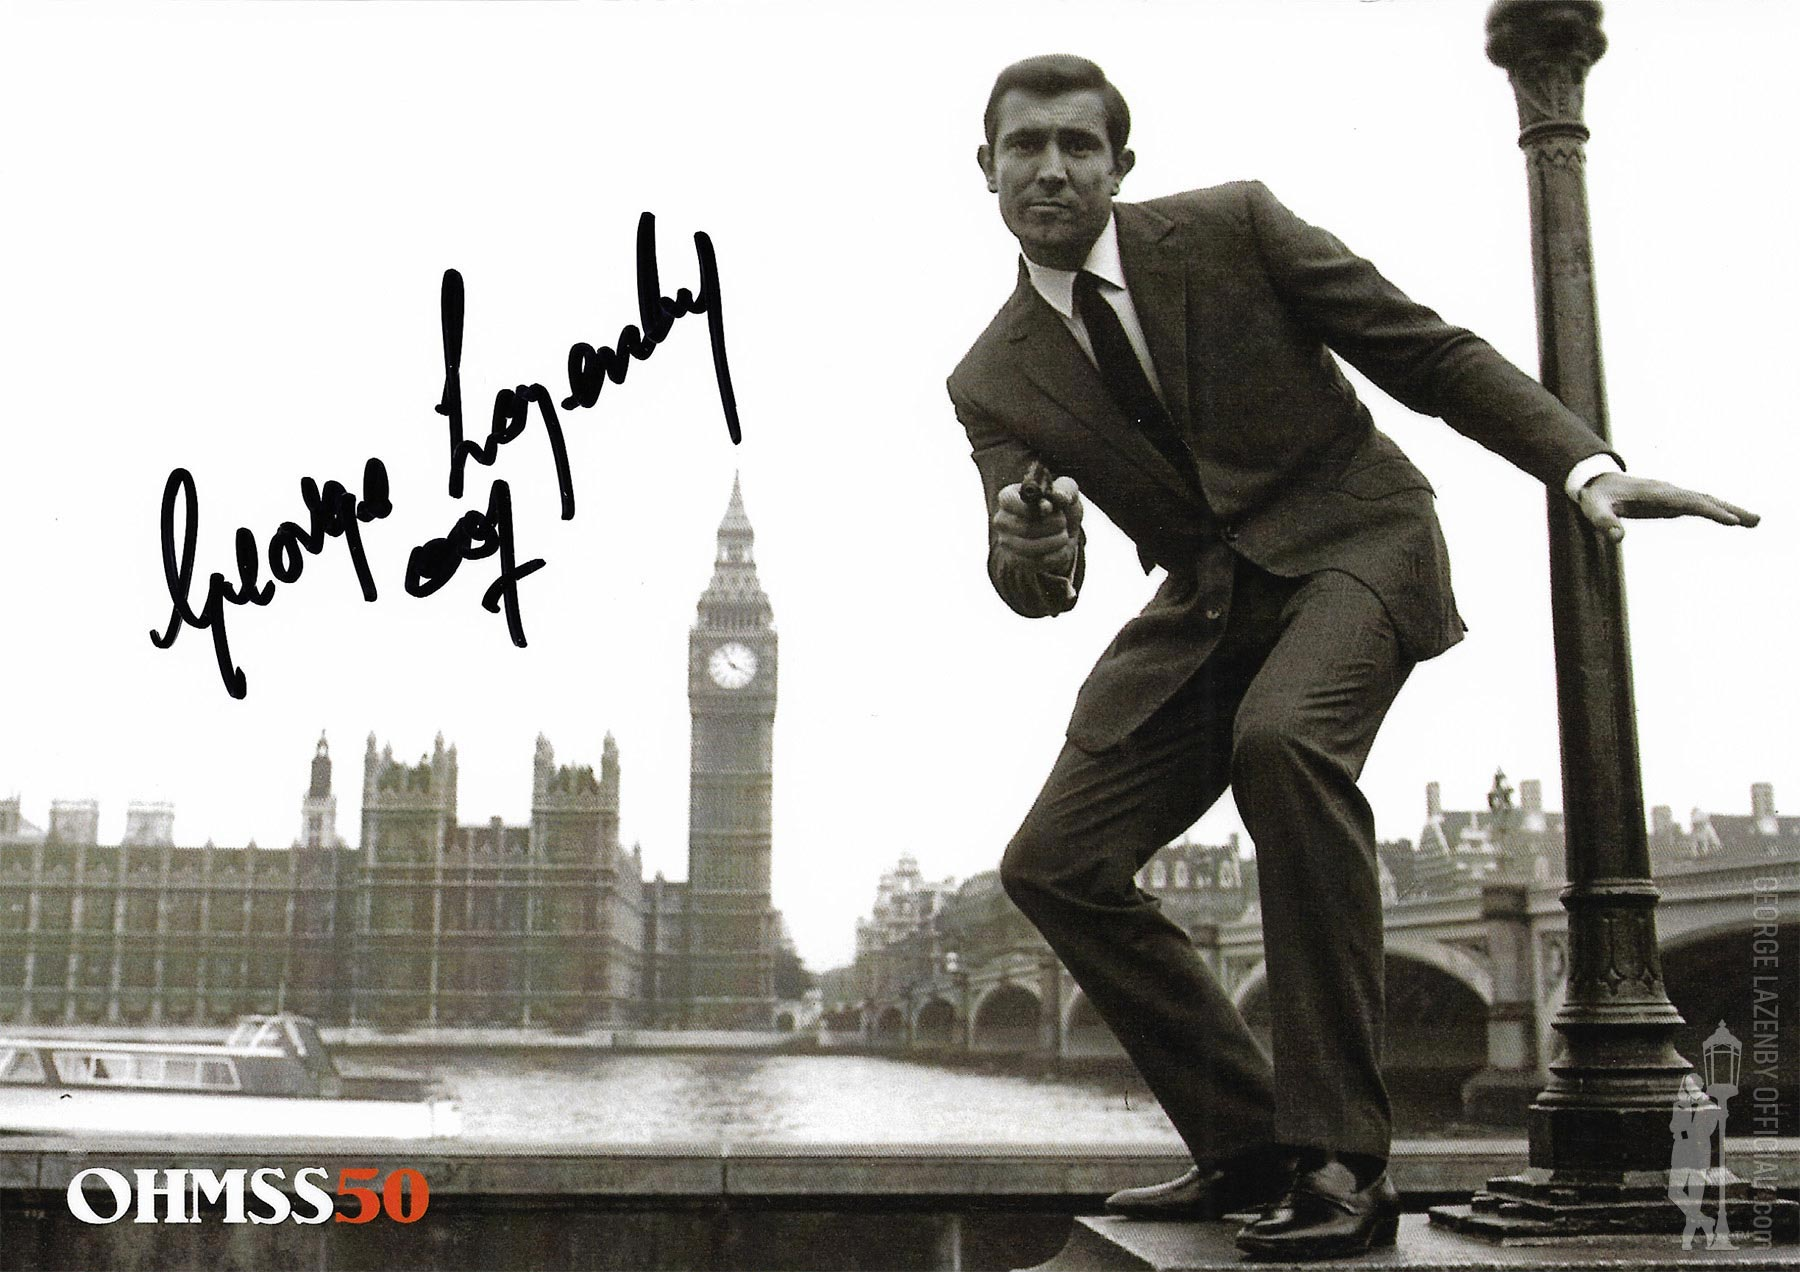 OHMSS 50 George Lazenby signed photograph GLOHMSS50-01